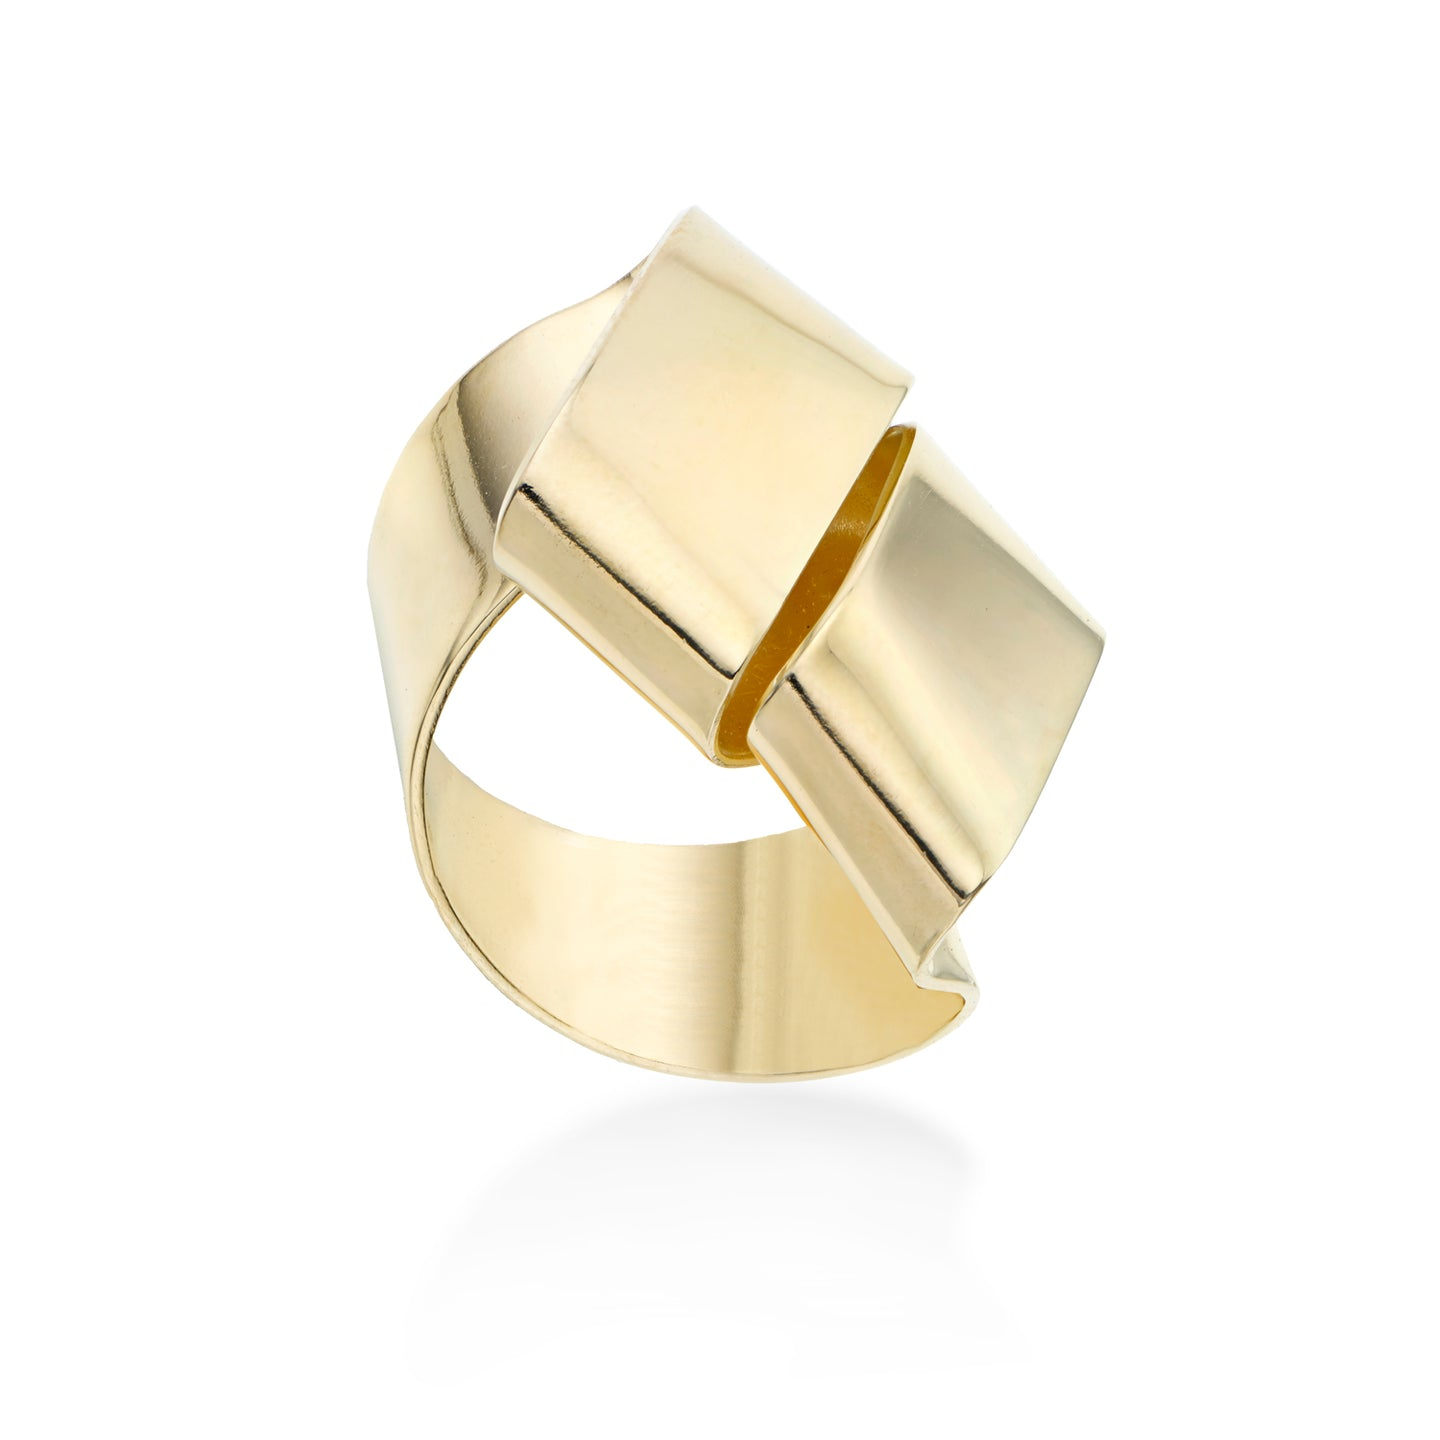 Double wrapped ribbon-like ring called Change Agent. It is hand formed in brass and finished with 14k gold plating.